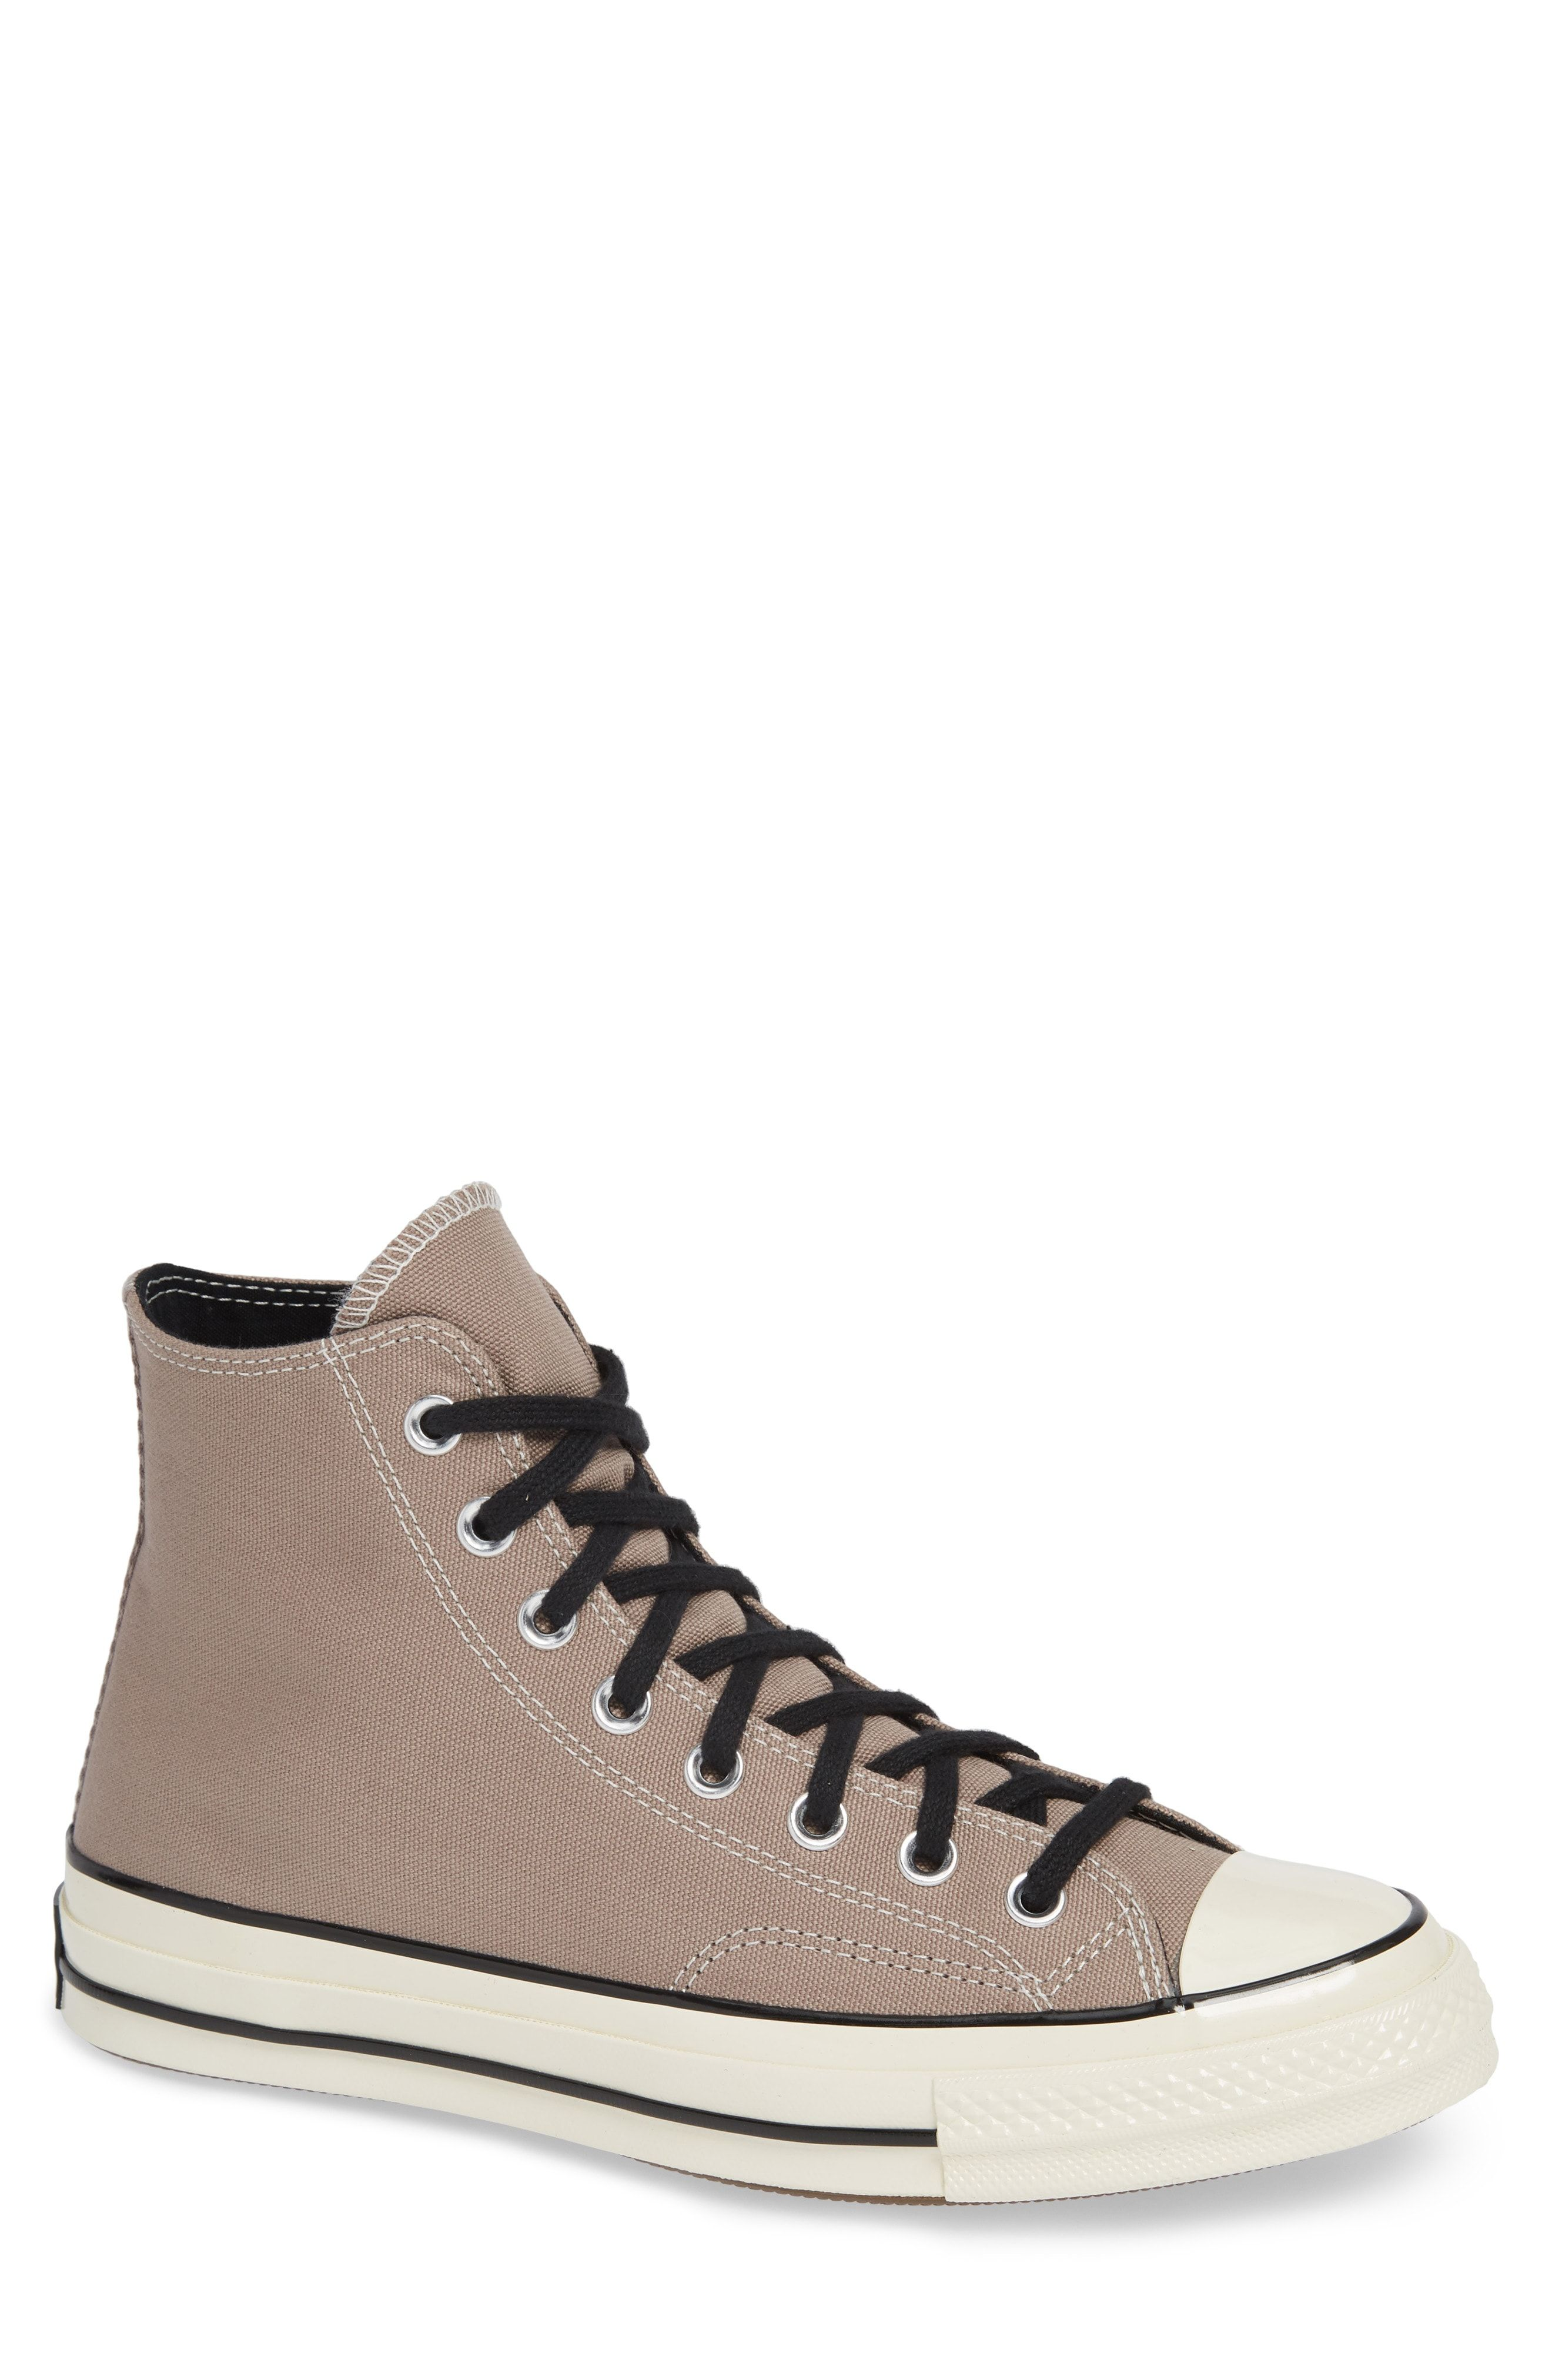 d8ce2419dda CONVERSE CHUCK TAYLOR ALL STAR 70 HIGH TOP SNEAKER.  converse  shoes ...